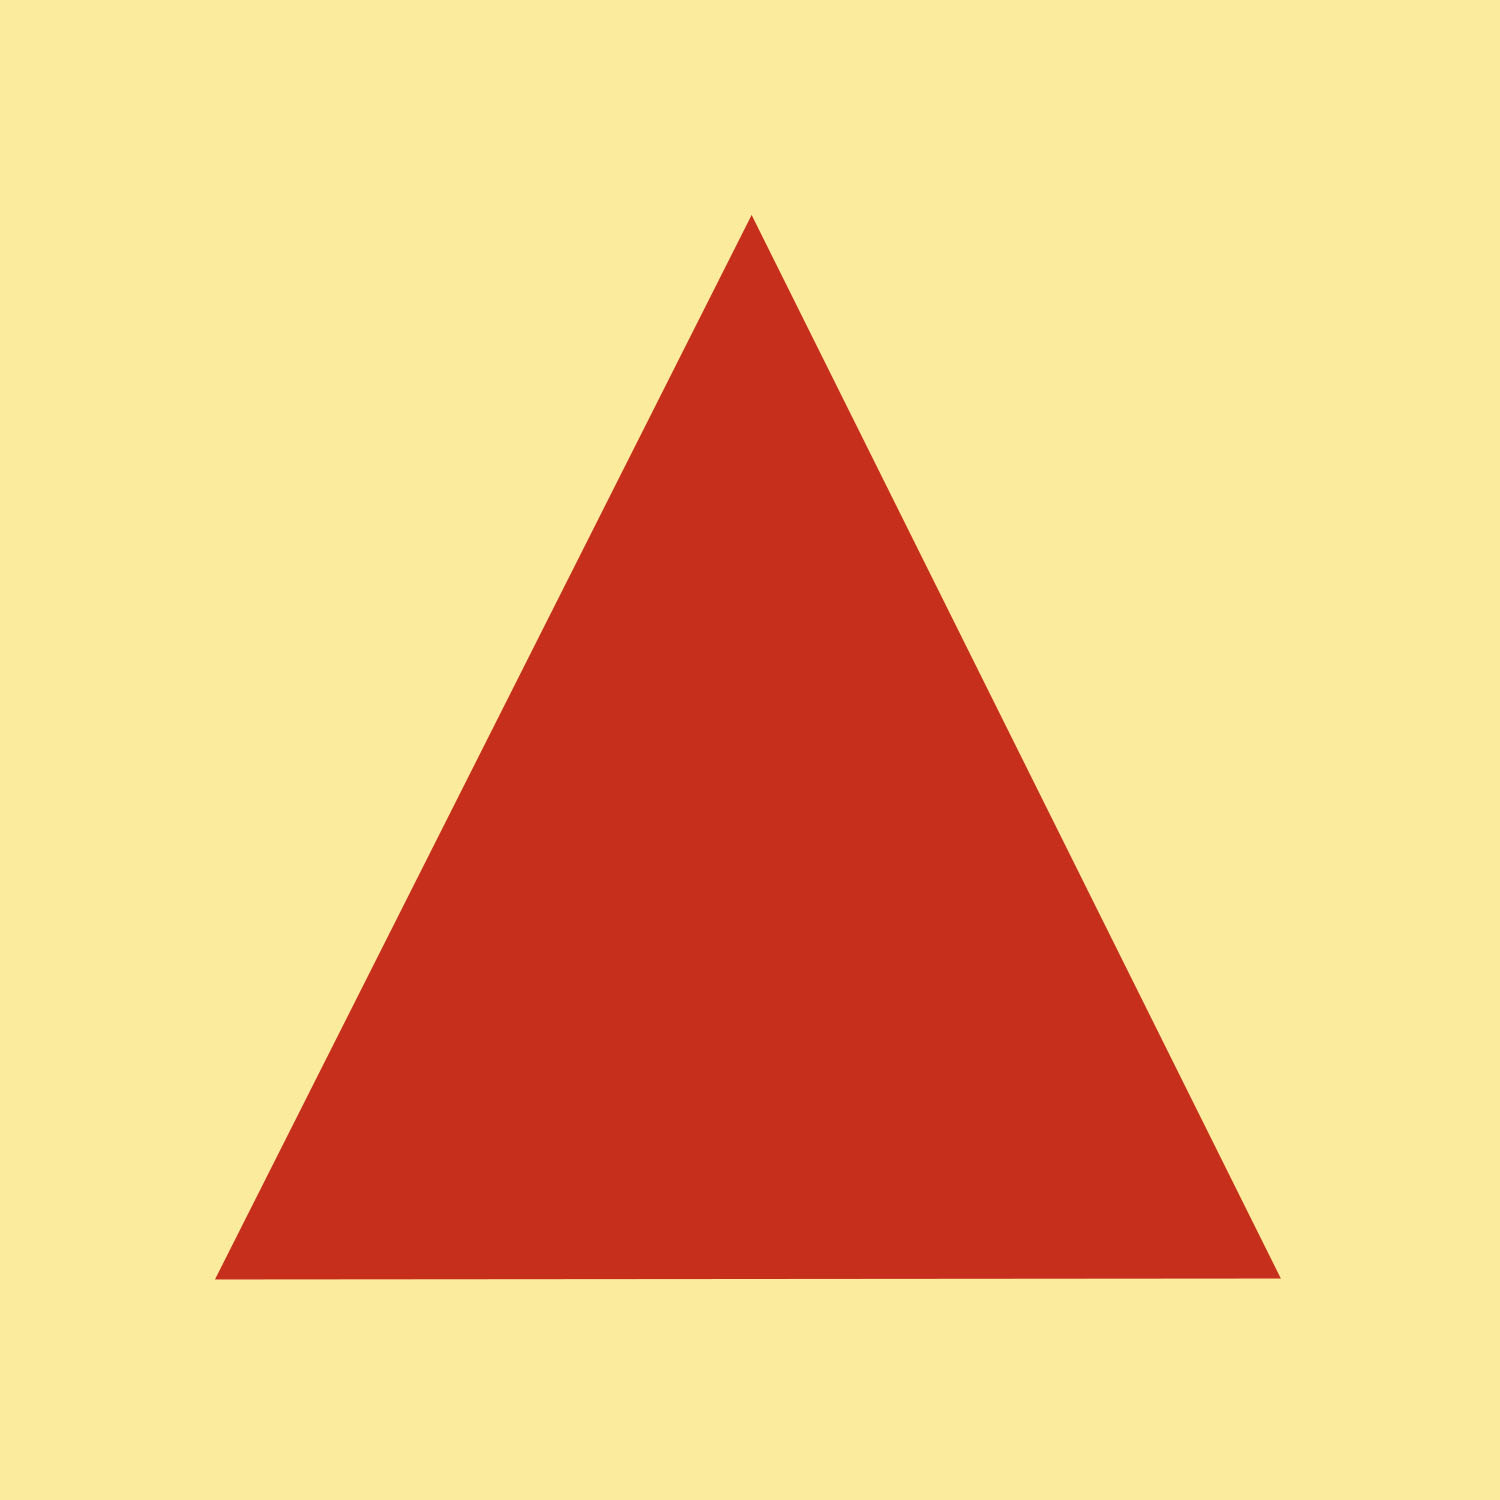 Red Triangle.jpg